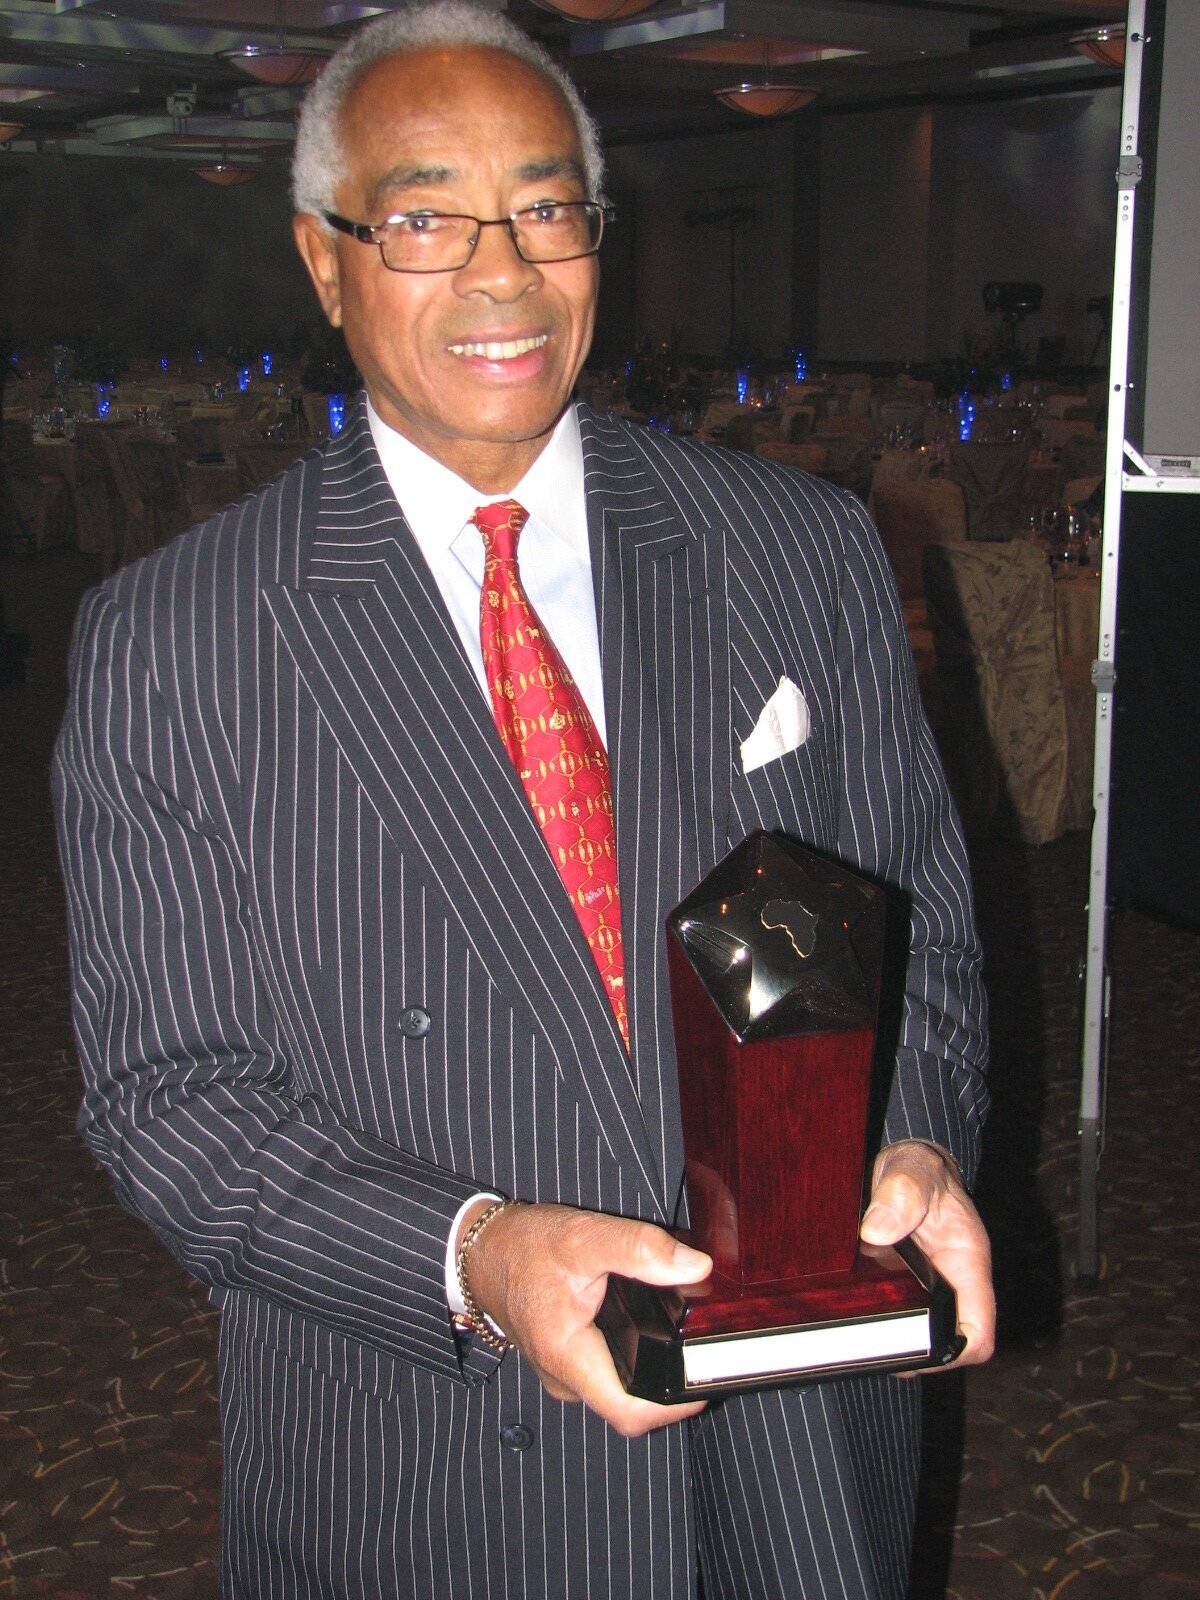 Donald Oliver has been honoured with many awards during an illustrious public service career